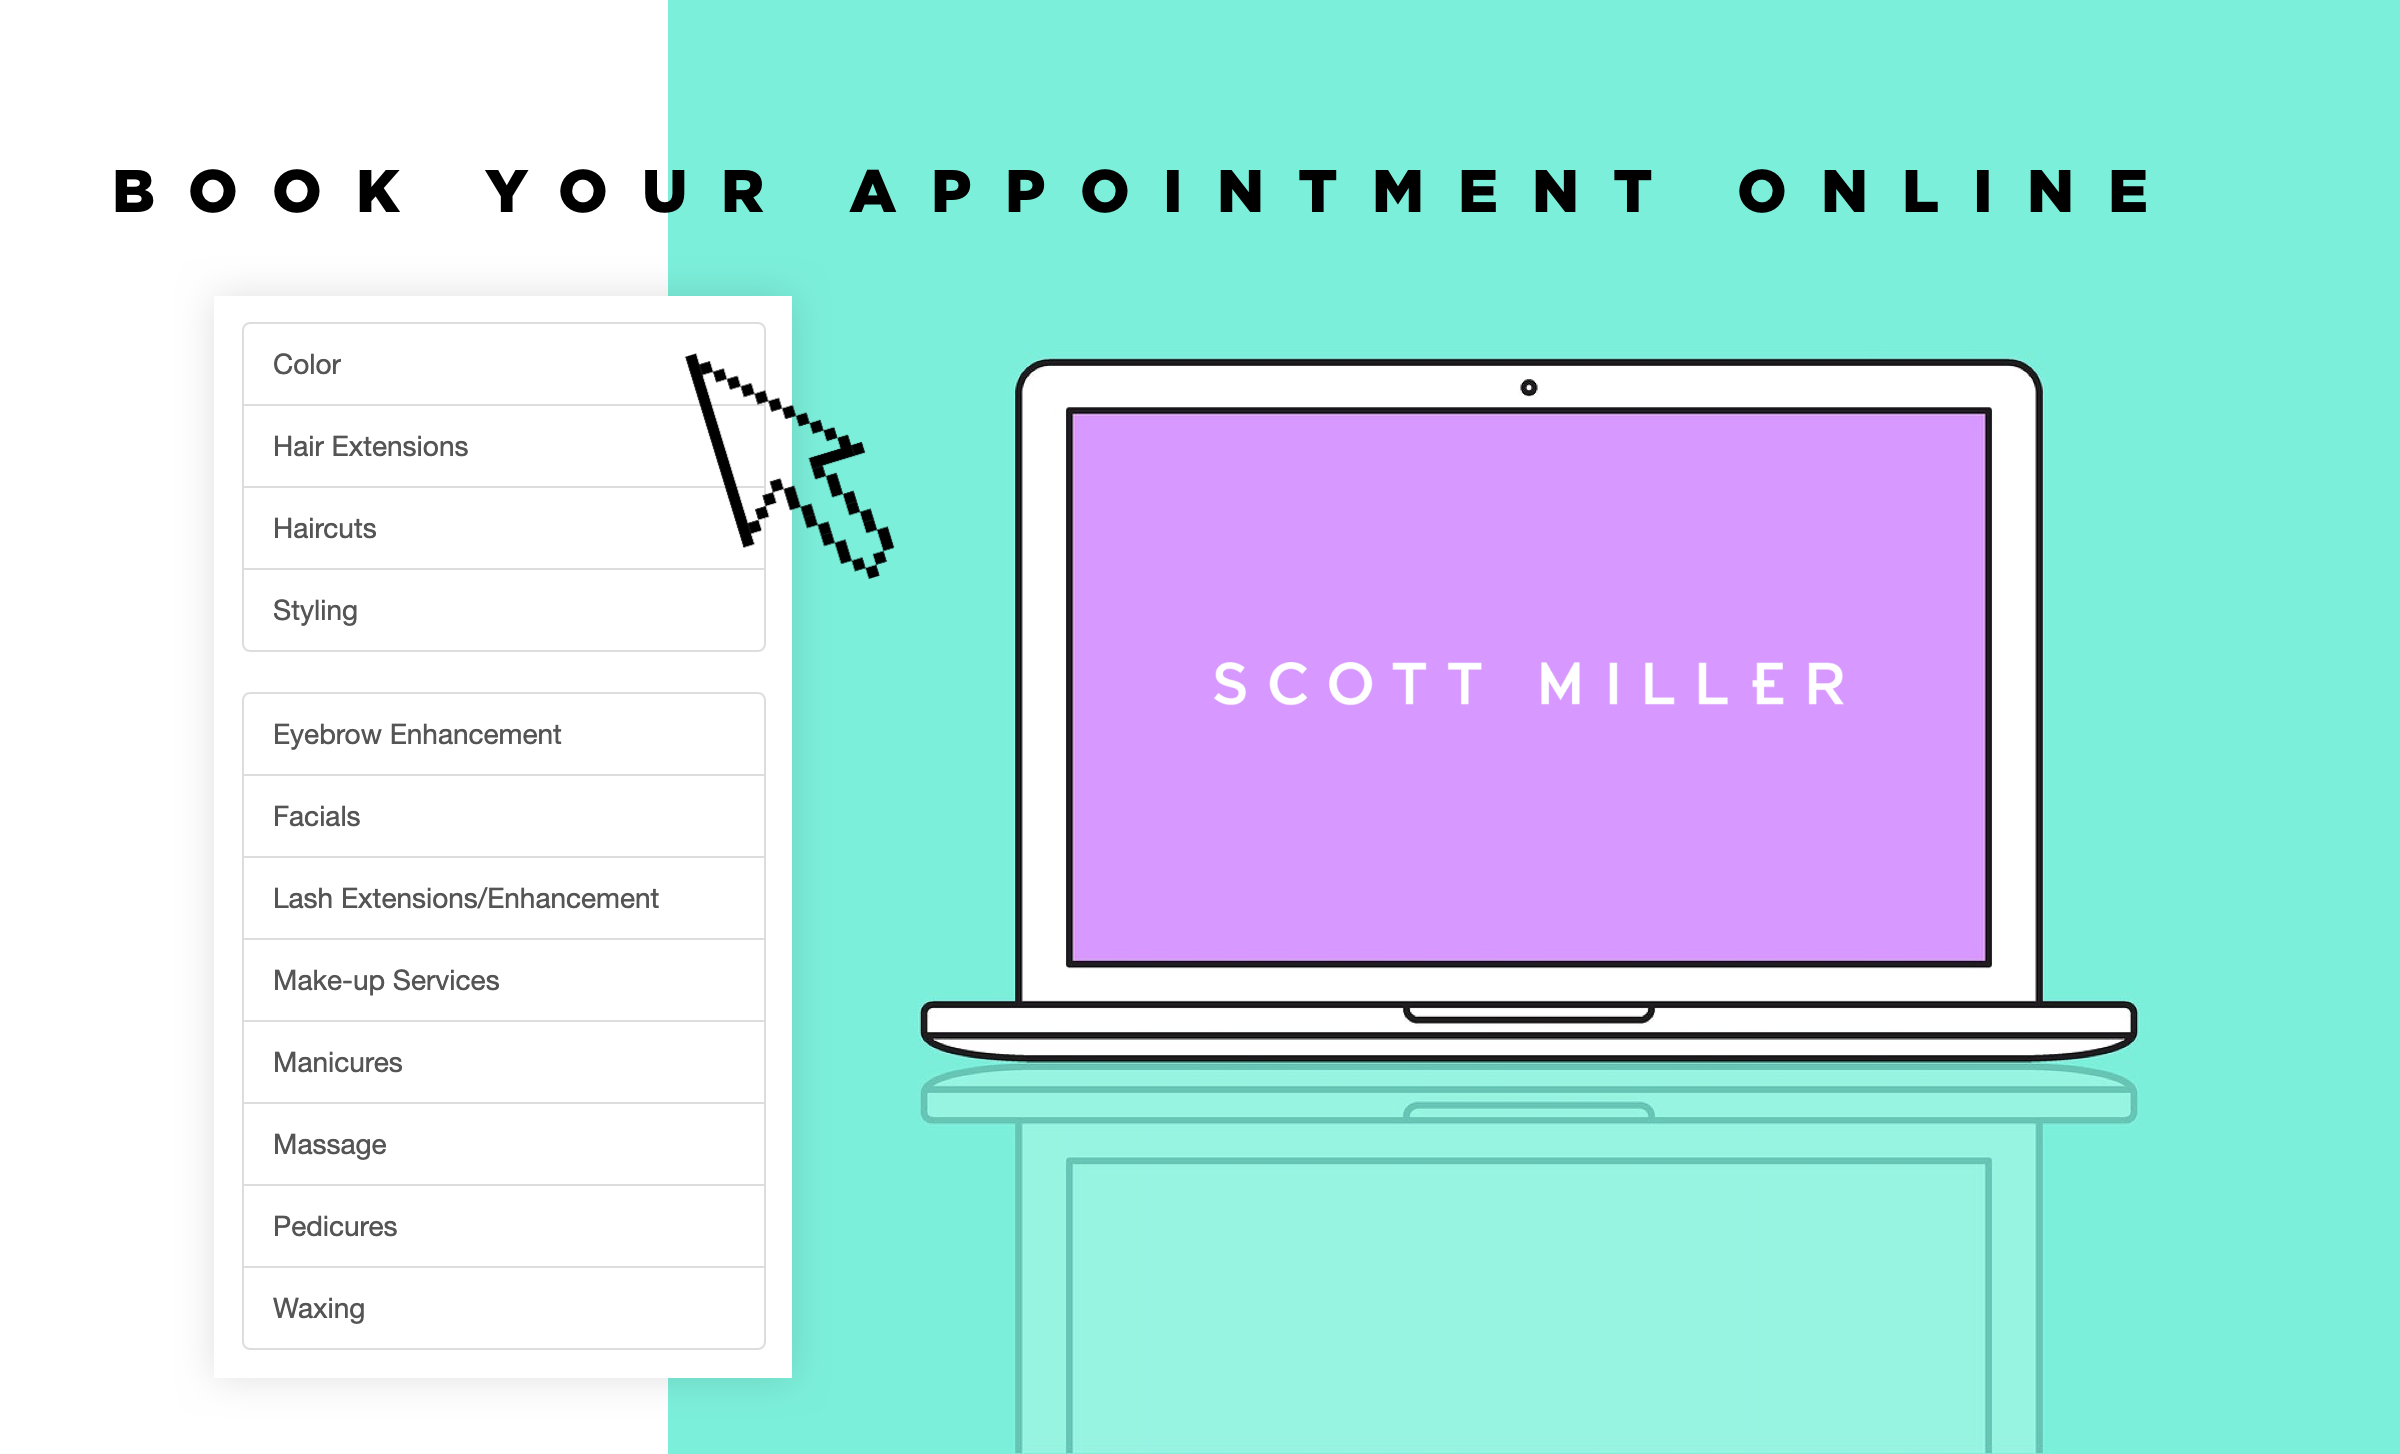 Book your next appointment online